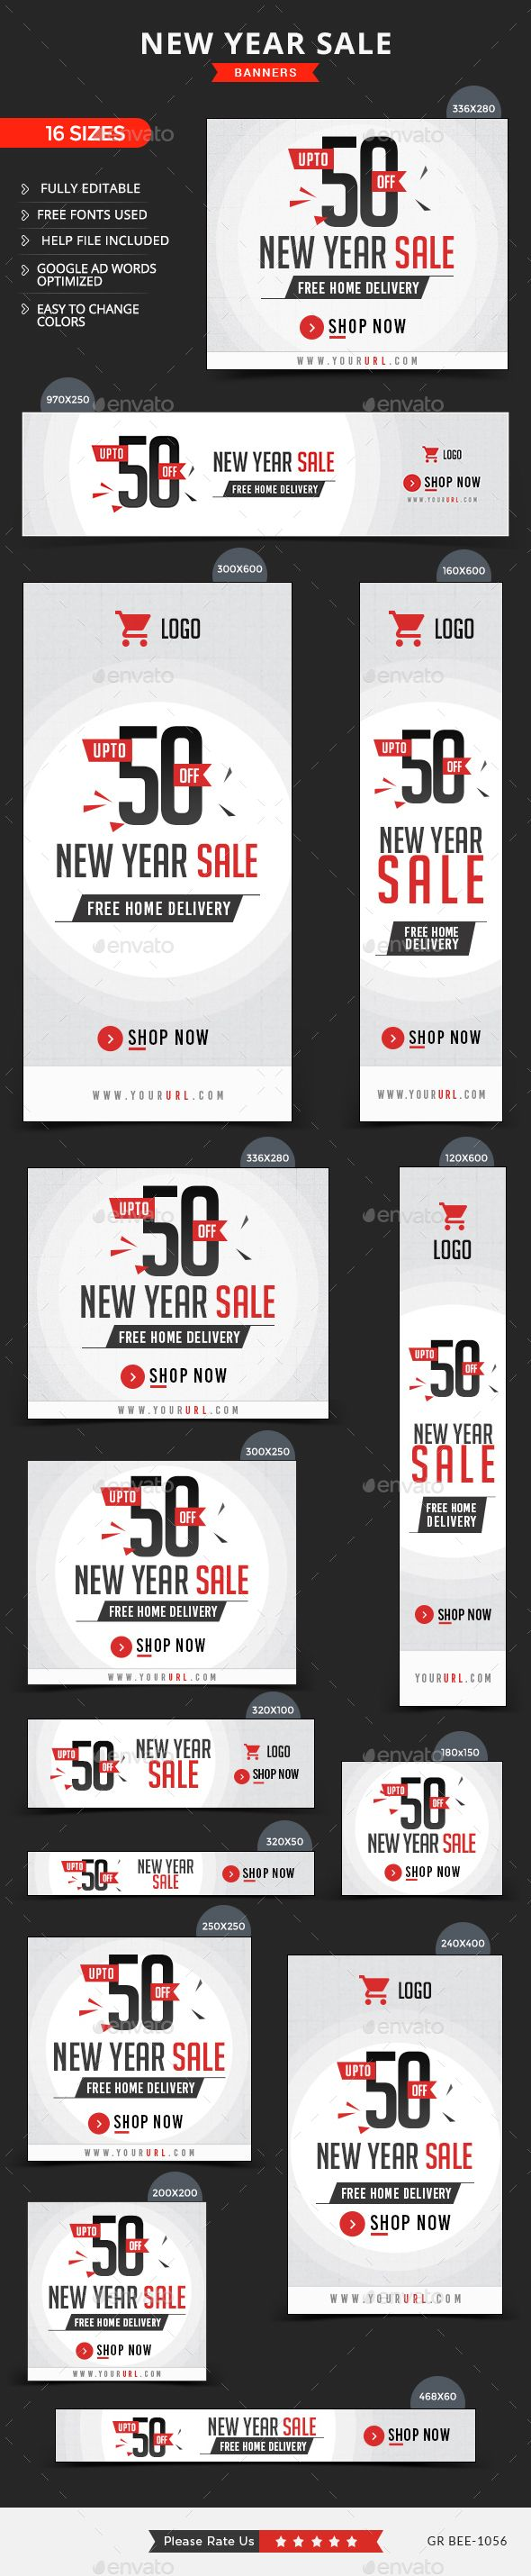 New Year Sale Web Banners Template PSD #design #ad Download: http://graphicriver.net/item/new-year-sale-banners/14164073?ref=ksioks